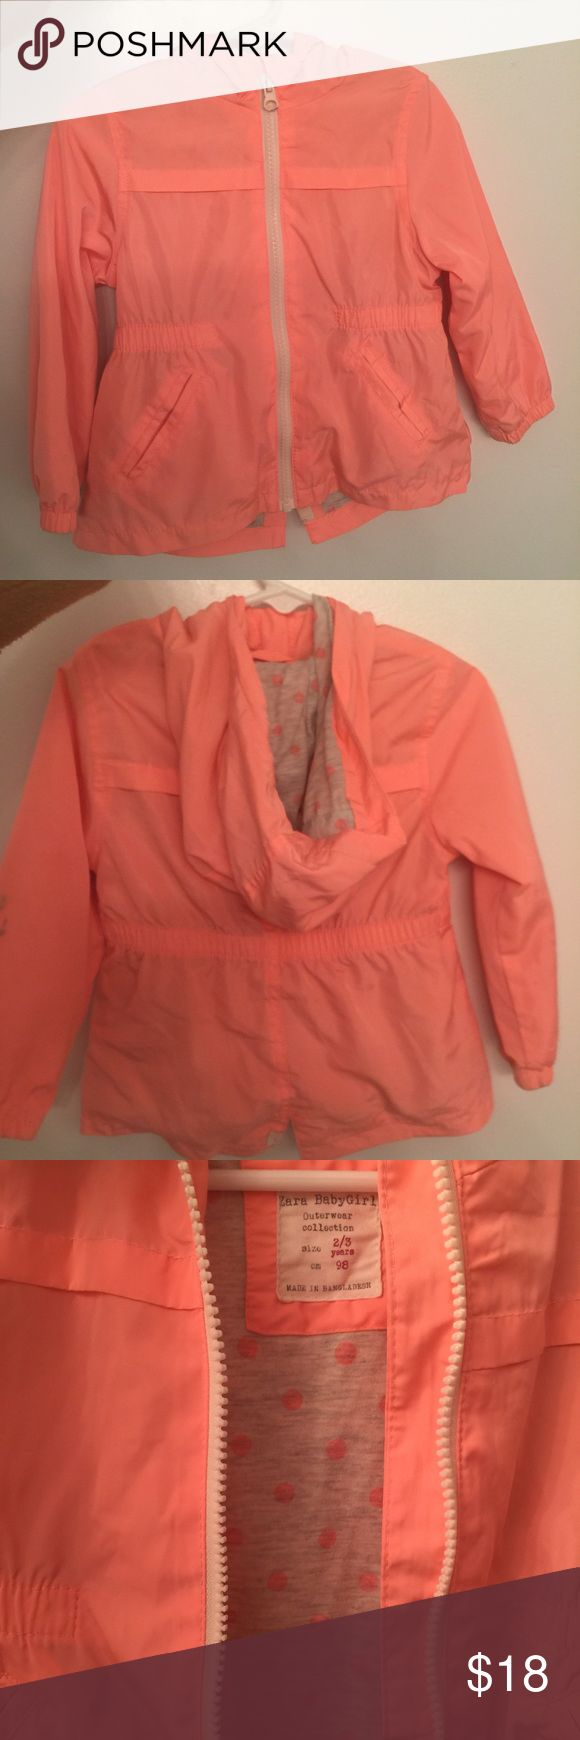 Toddlers Zara Coral Lightwear Jacket Coral Jacket with 2 pockets on the front Zara Jackets & Coats Utility Jackets